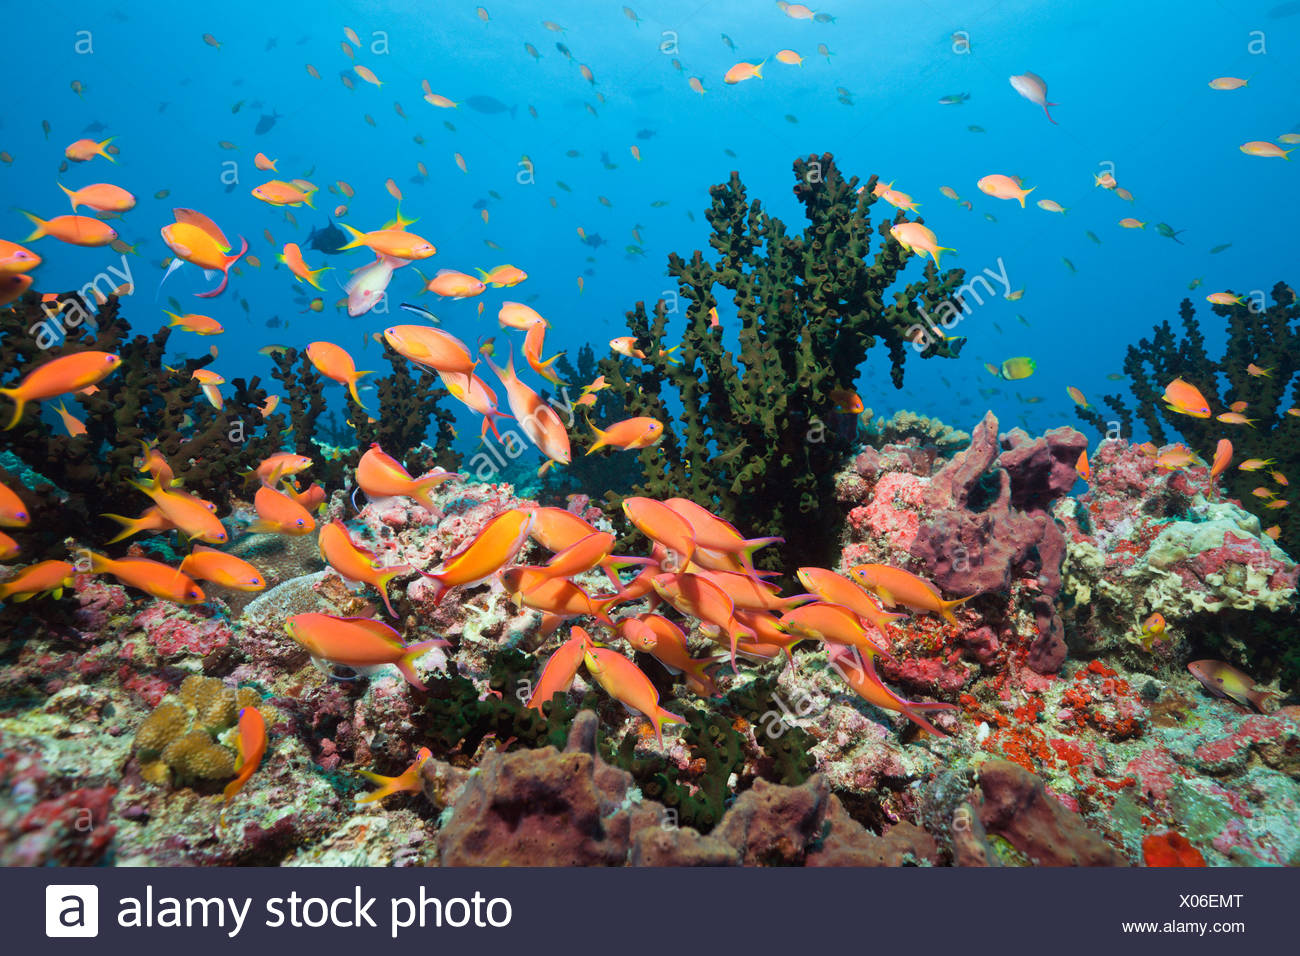 Flame Anthias in Coral Reef, Pseudanthias ignitus, Baa Atoll, Indian Ocean, Maldives - Stock Image